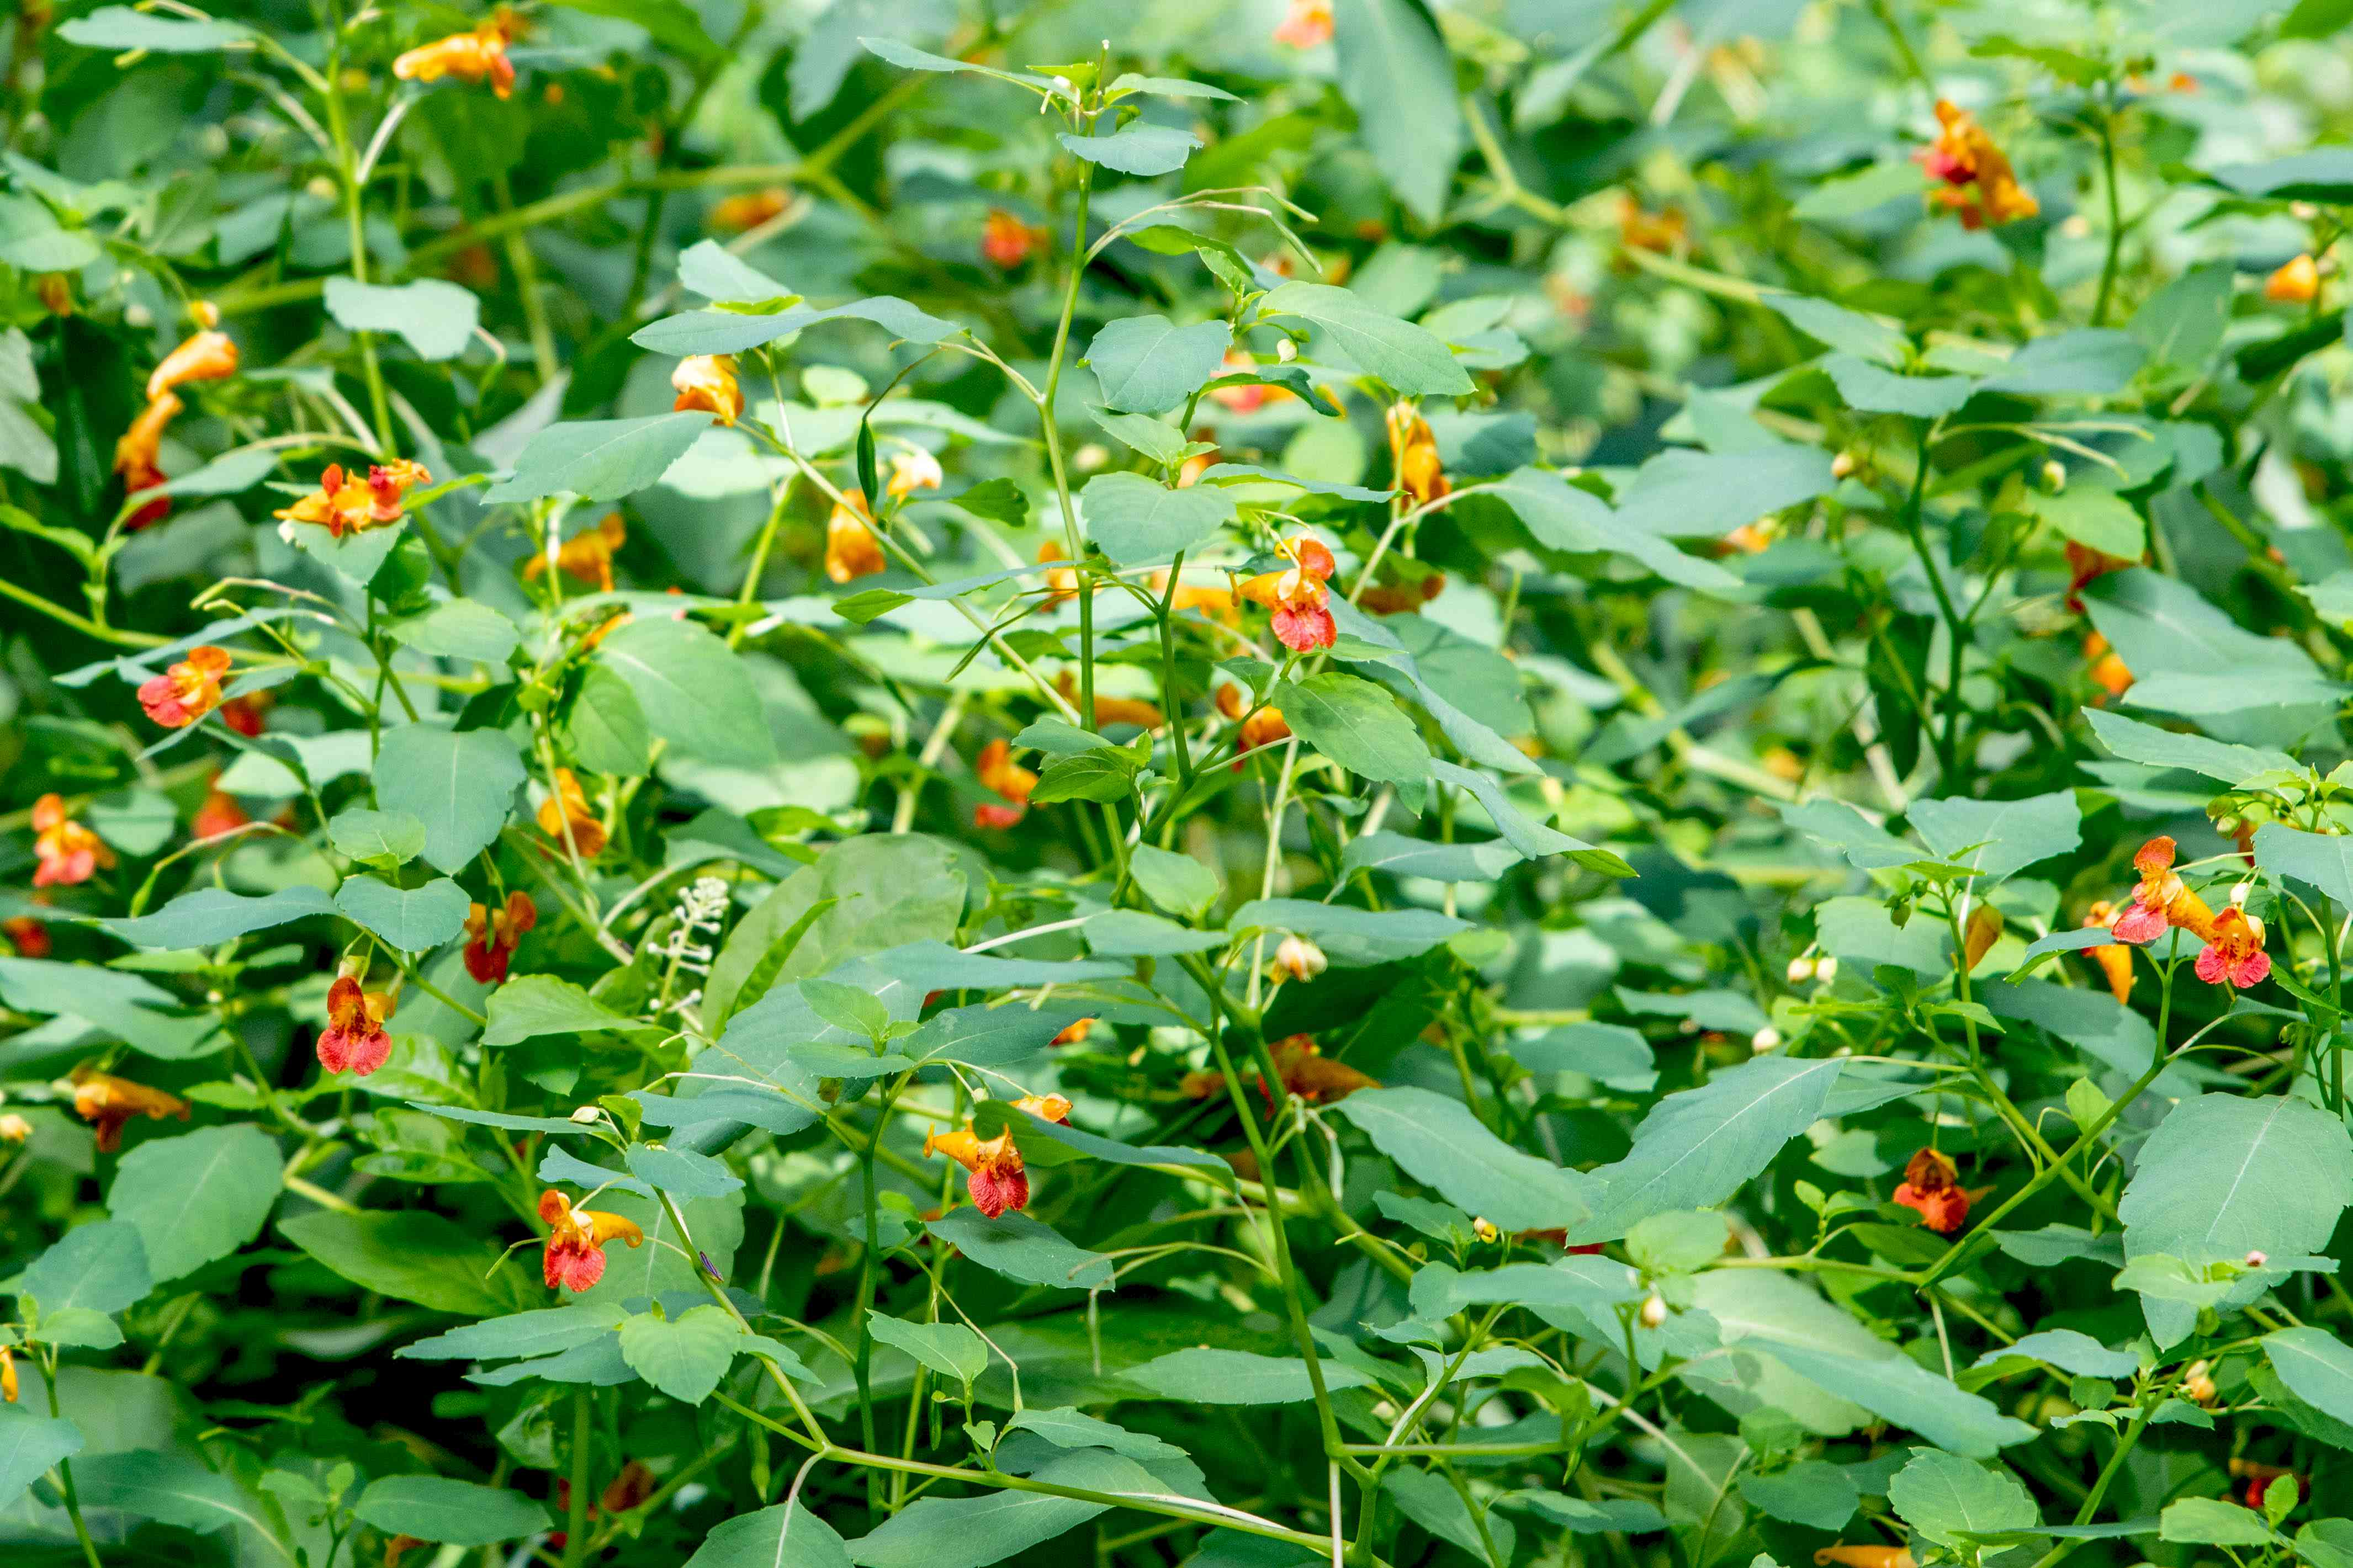 Orange jewelweed plant with thin stems and small red-orange flowers on top surrounded by leaves